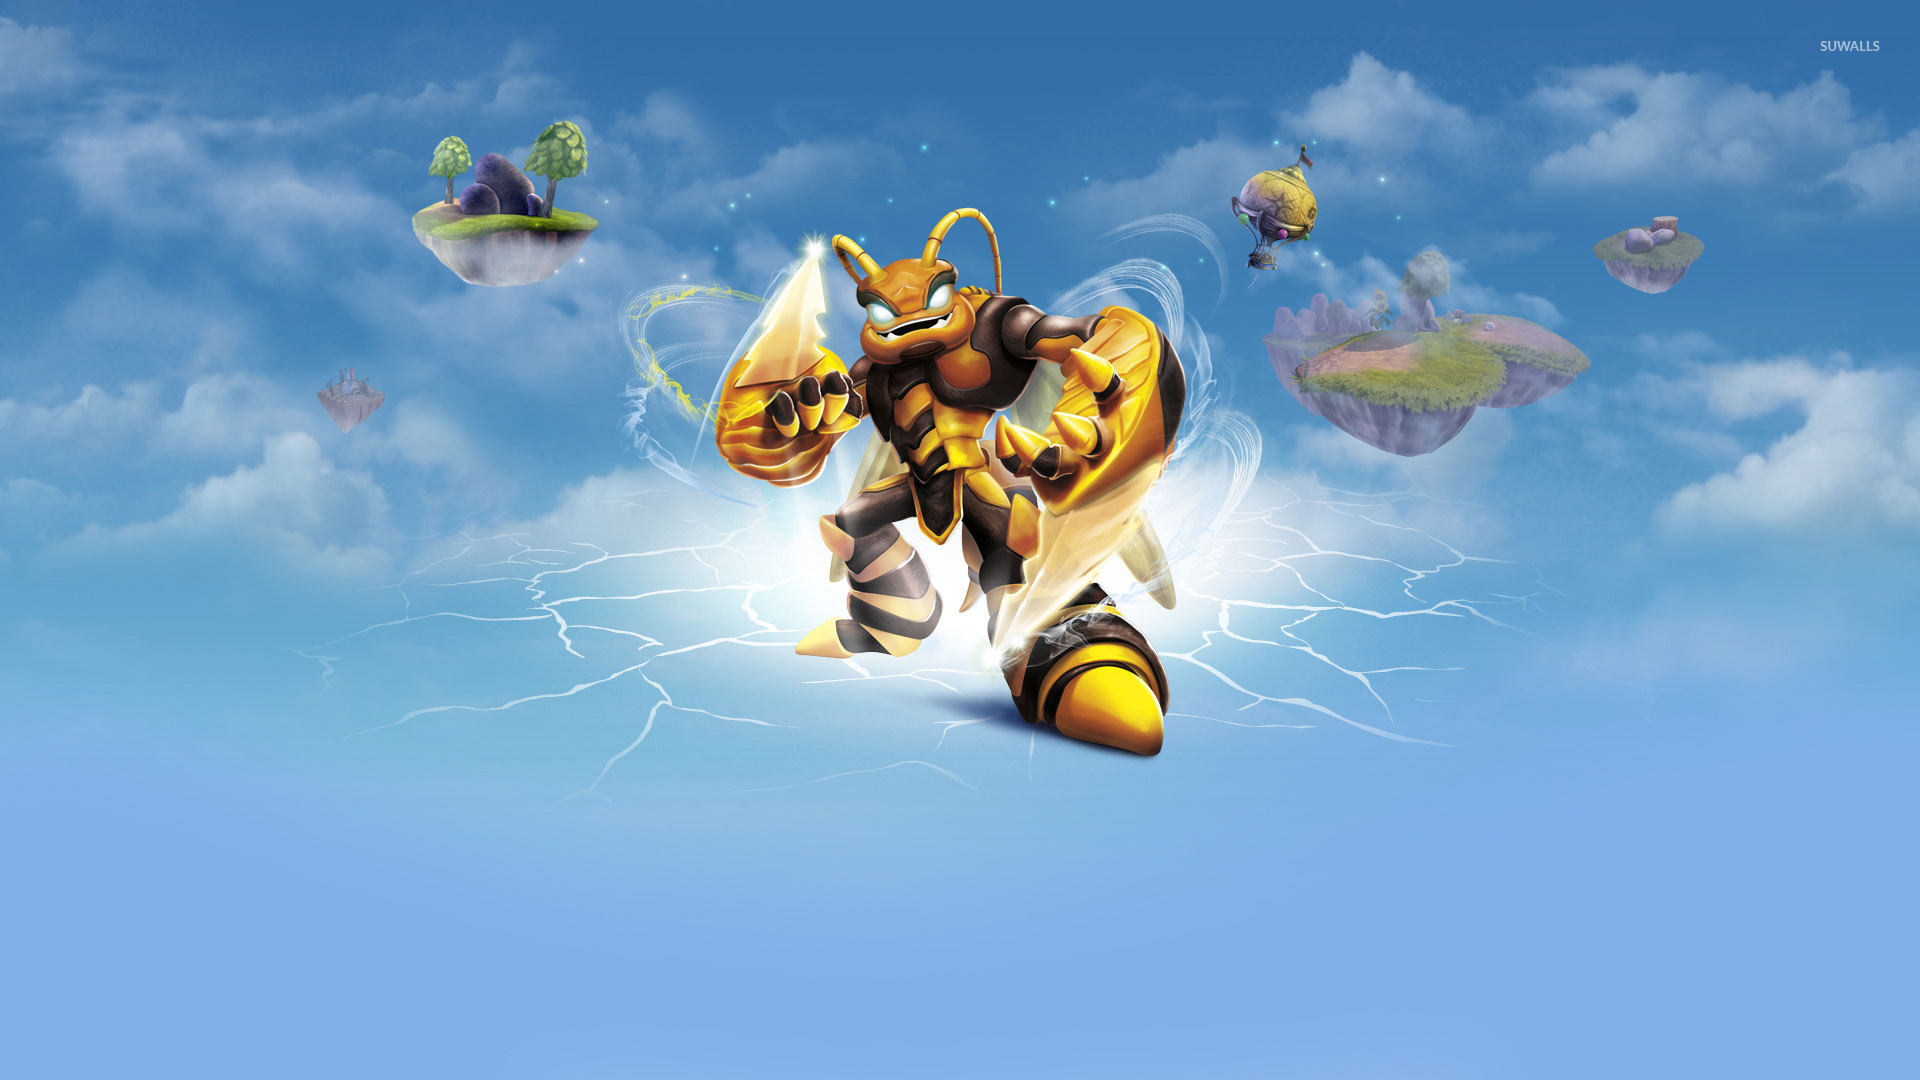 Swarm   Skylanders Giants wallpaper   Game wallpapers   22056 1920x1080